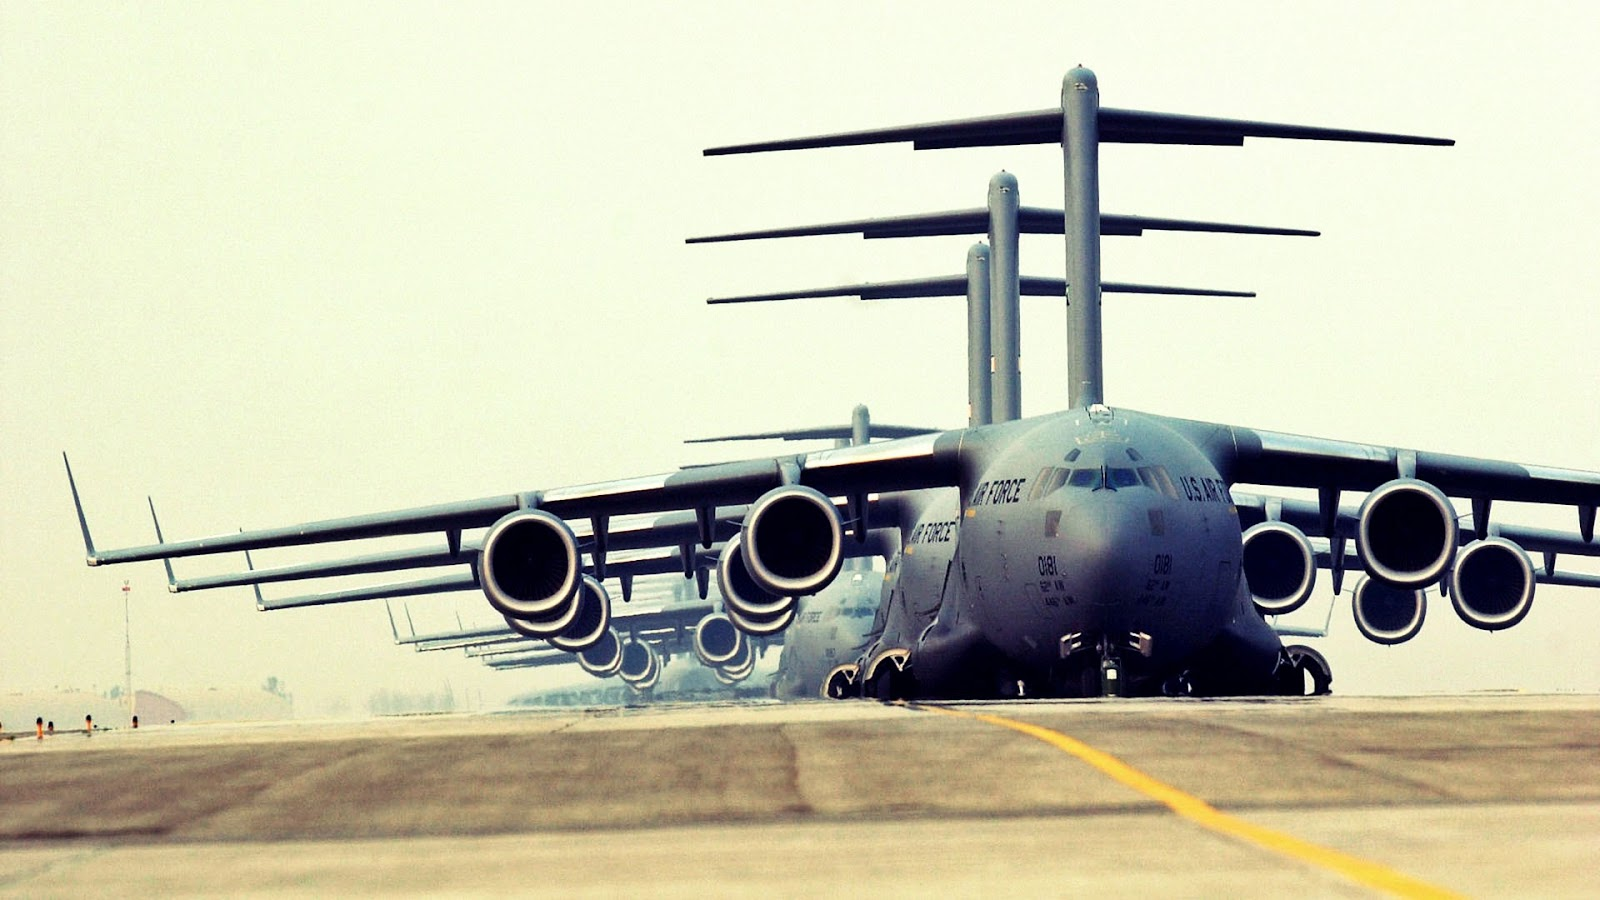 US Air Force HD Wallpaper - HD Wallpapers - 9to5Wallpapers